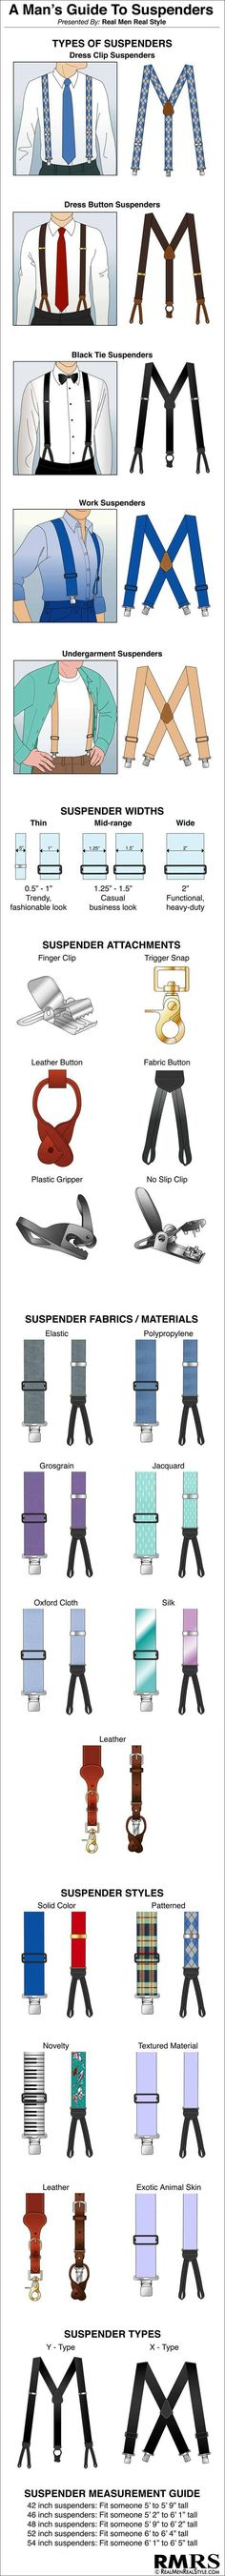 A guide to suspenders! Classic.